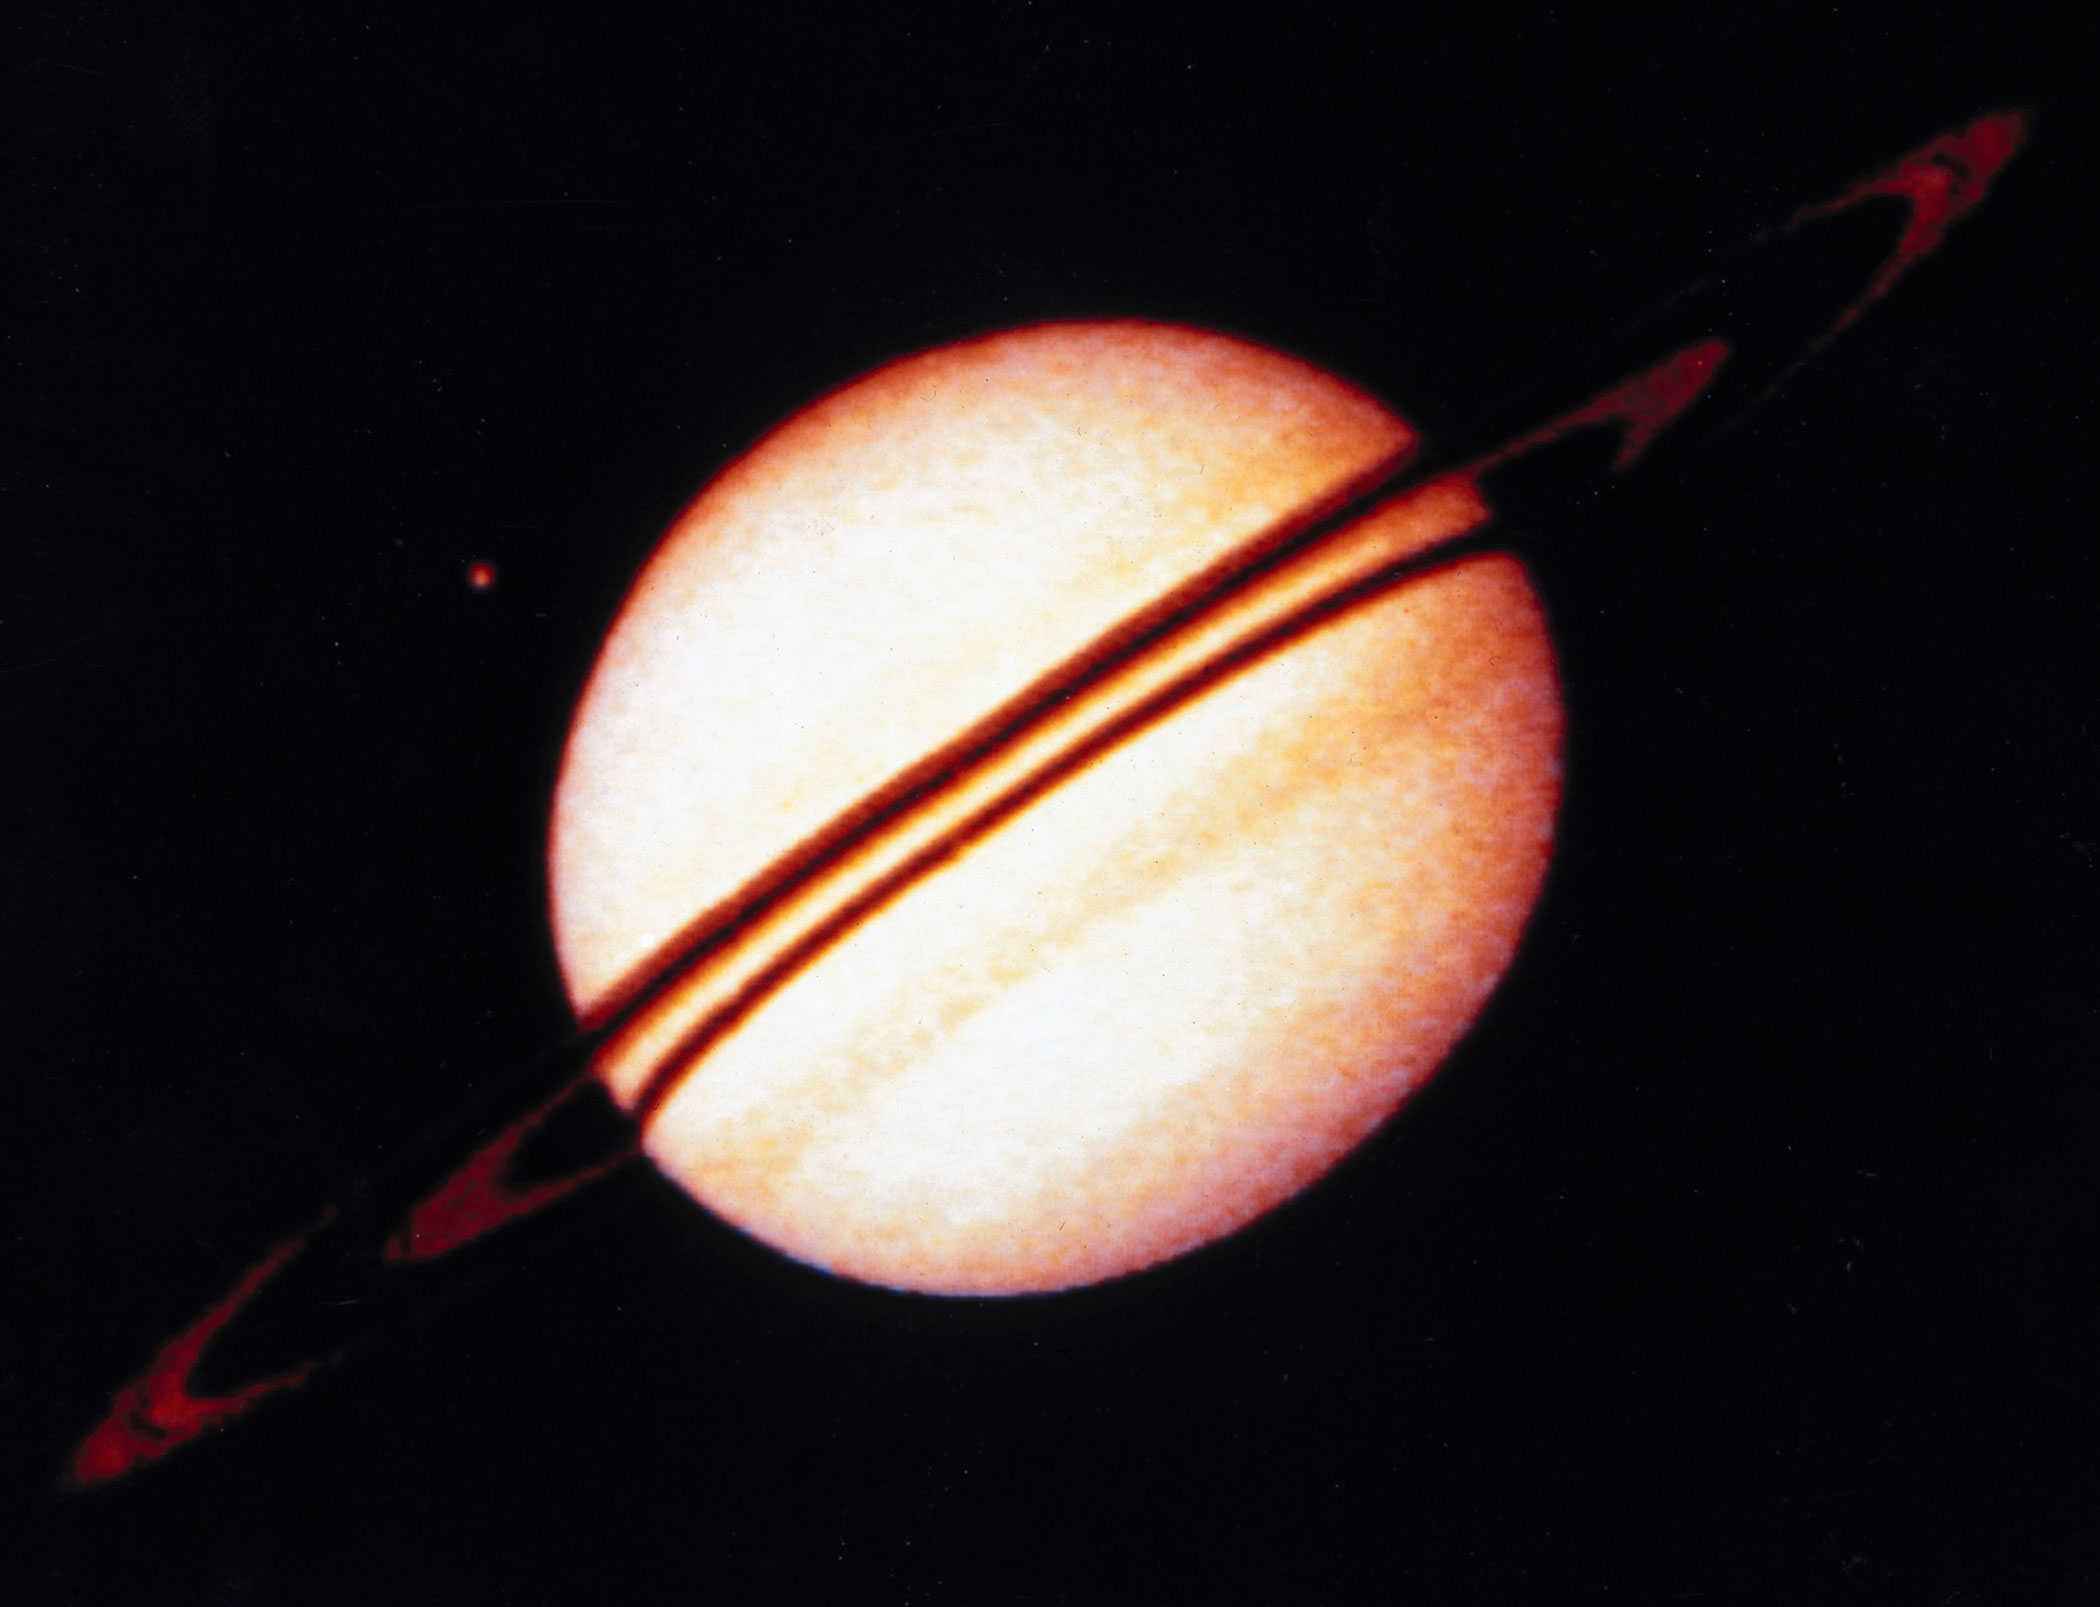 <b>Saturn, 1973</b>  Pioneer 11, launched by NASA on 6th April 1973, returned the first close-up pictures of the ringed planet Saturn.